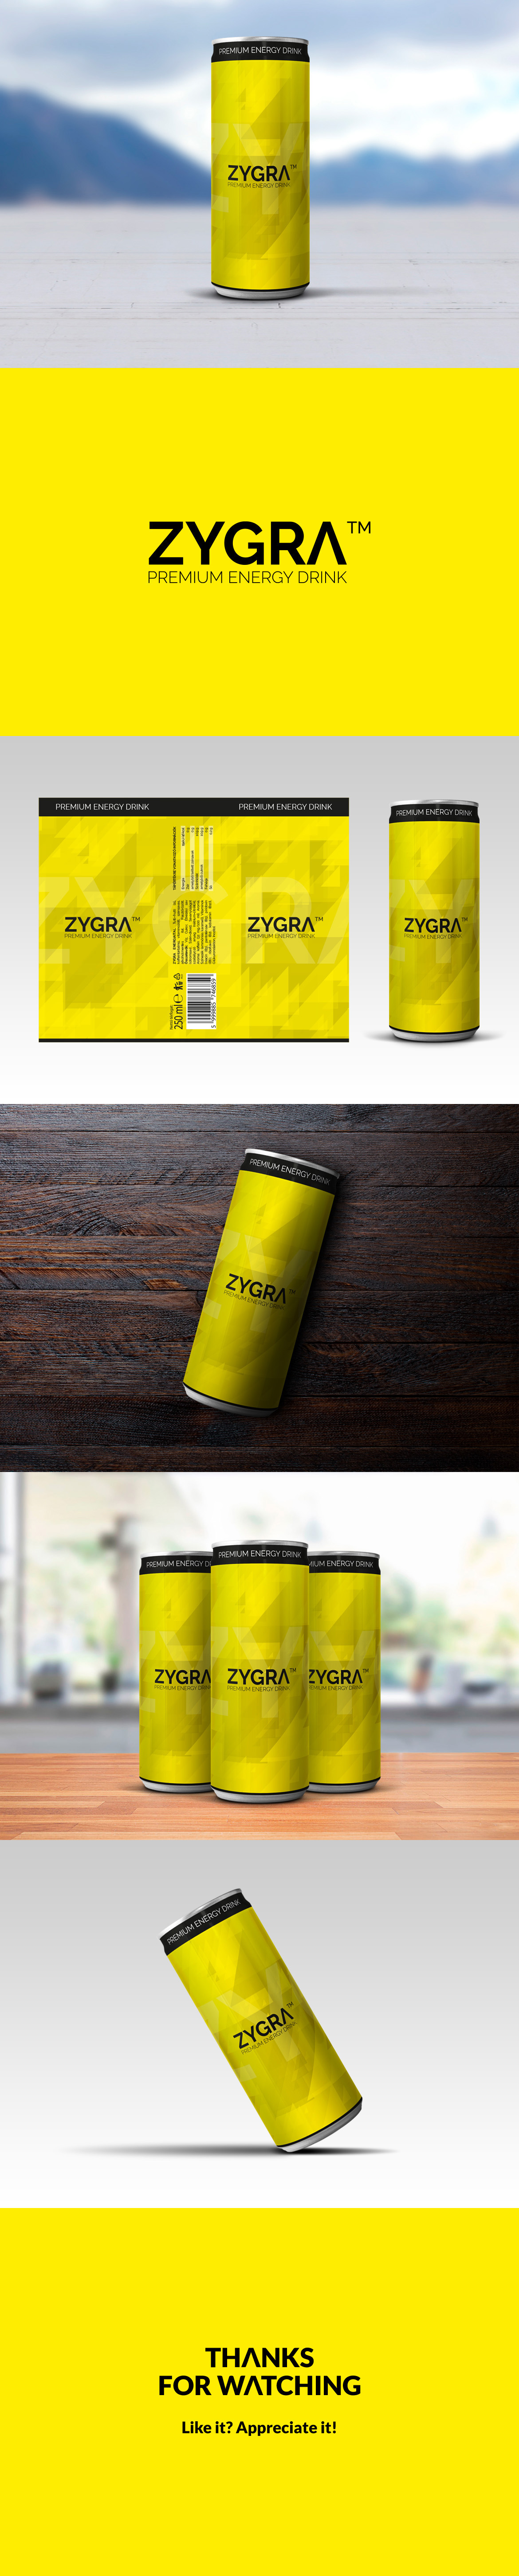 Packaging graphic design  product design  energy drink beverage ILLUSTRATION  vector graphic zygra